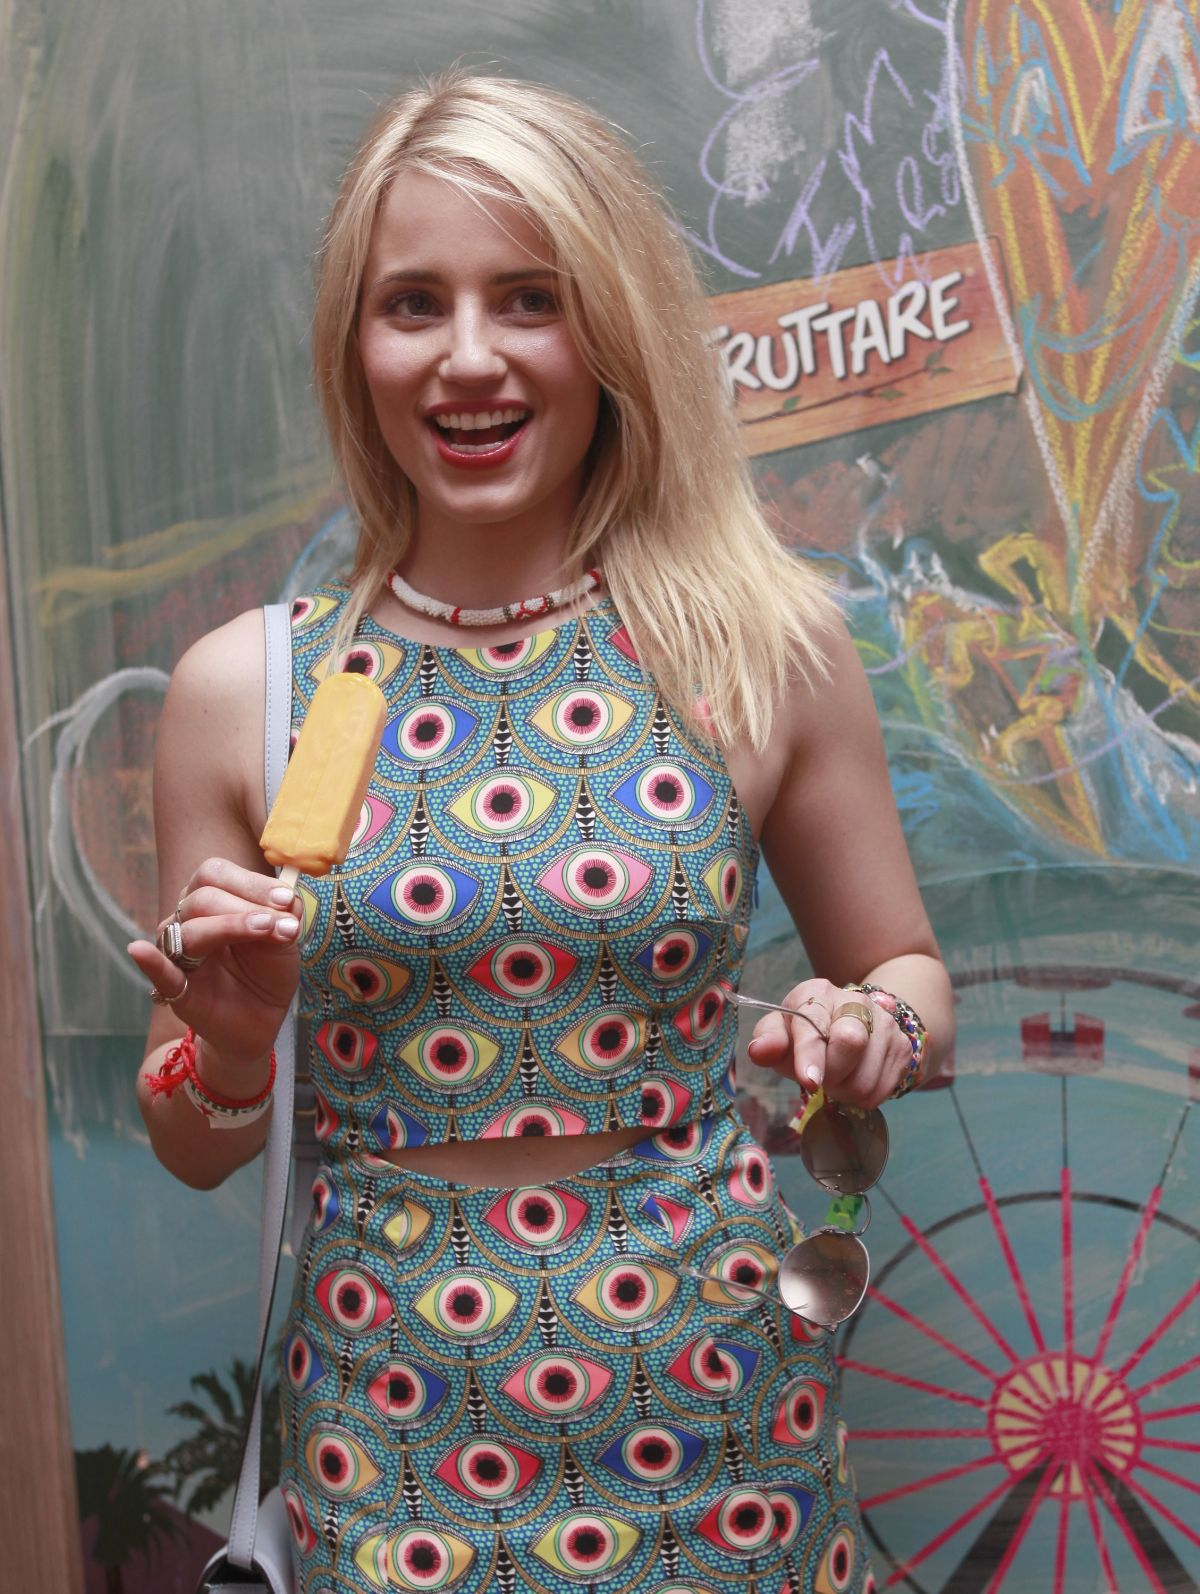 DIANNA AGRON at Fruttare Hangout at Coachella